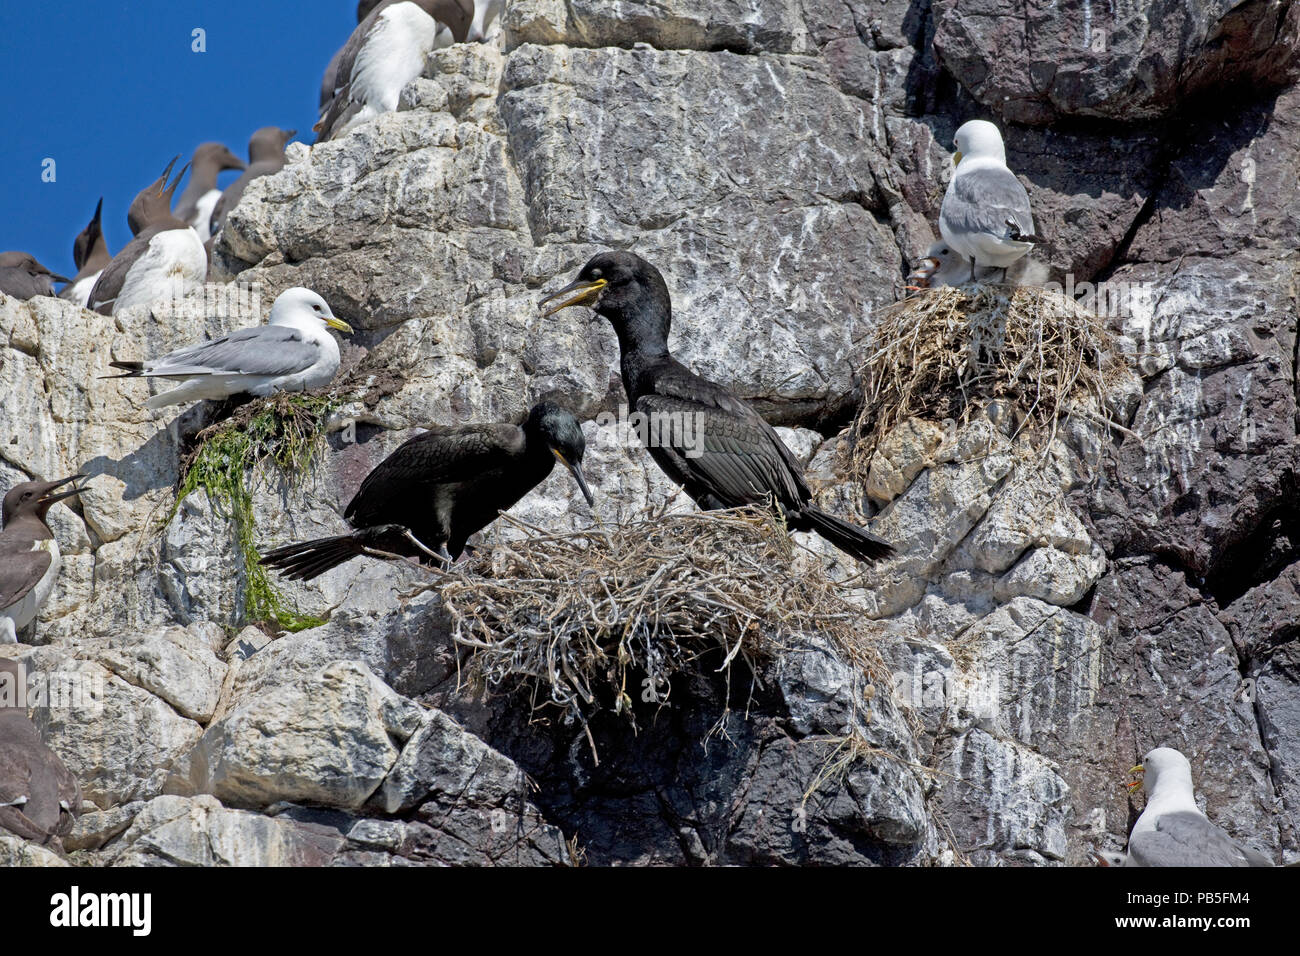 Shag with chicks nesting on rock outcrop Staple Island Farne Island Northumberland UK - Stock Image